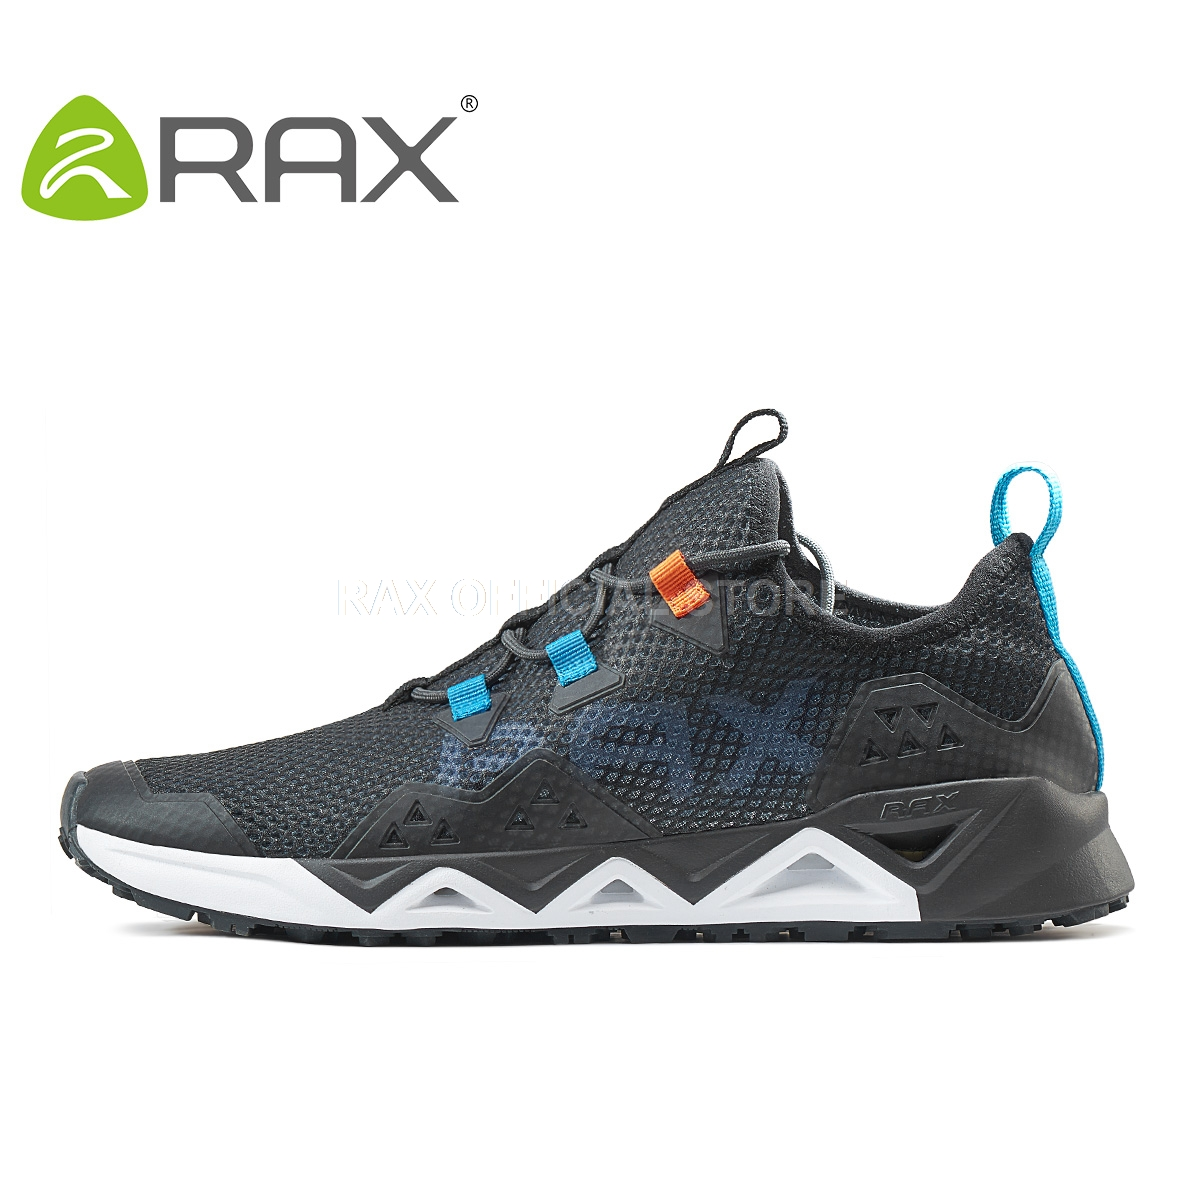 RAX New Mens Sneakers Breathable Trekking Shoes For Men Outdoor Walking Aqua Women Sneakers Sports Shoes Hiking Shoes цены онлайн